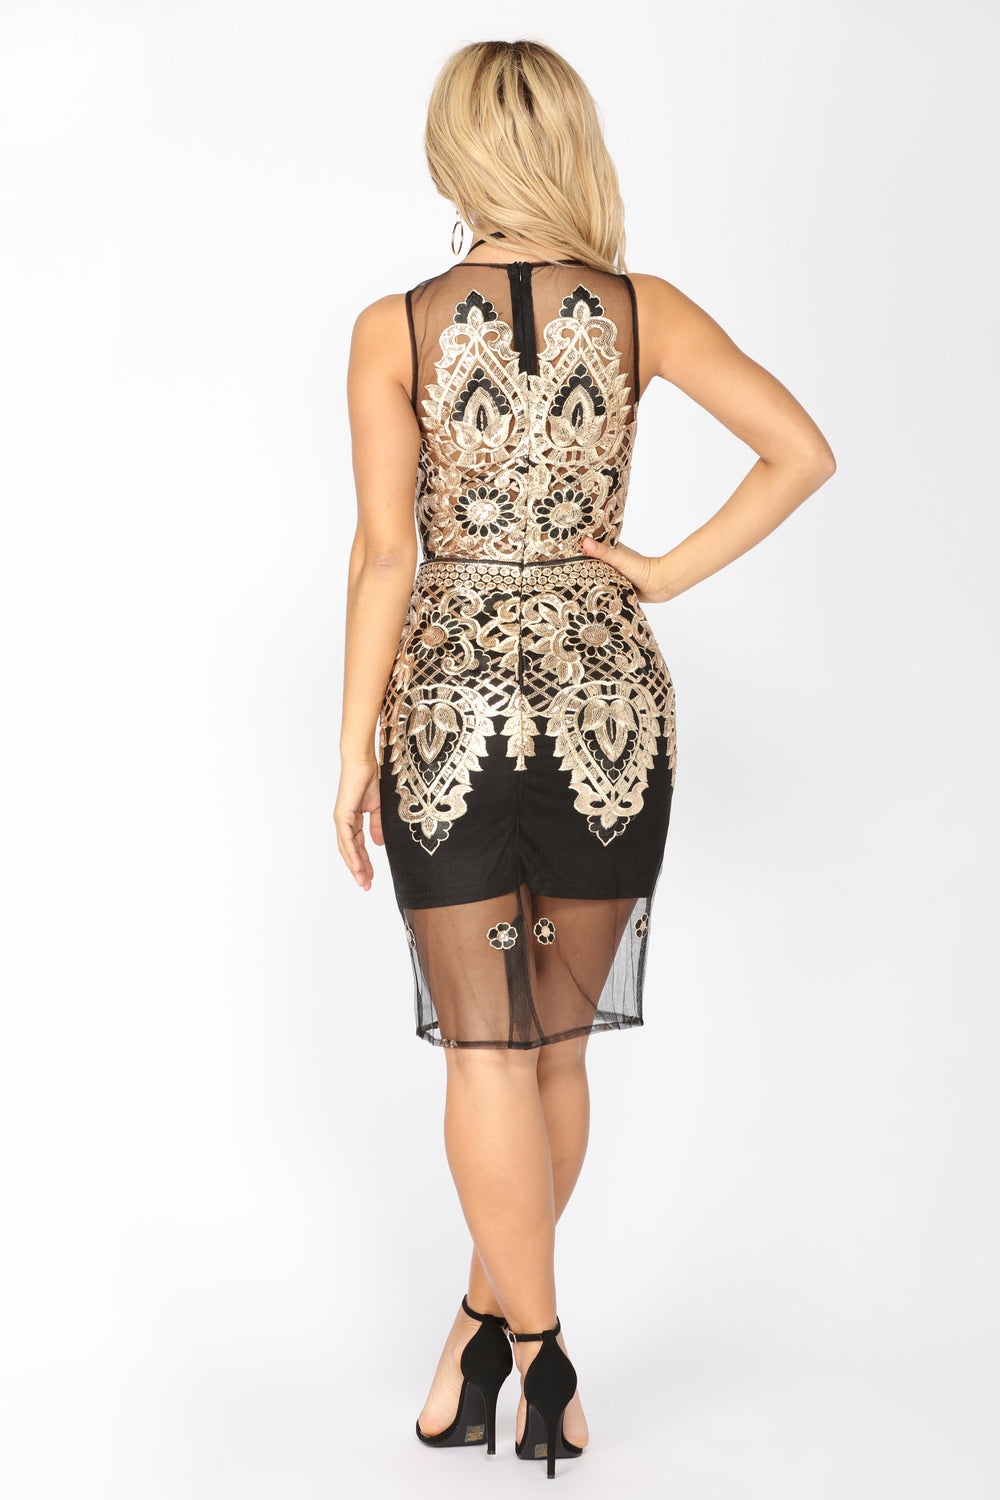 Fire And Ice Sequin Dress - Black